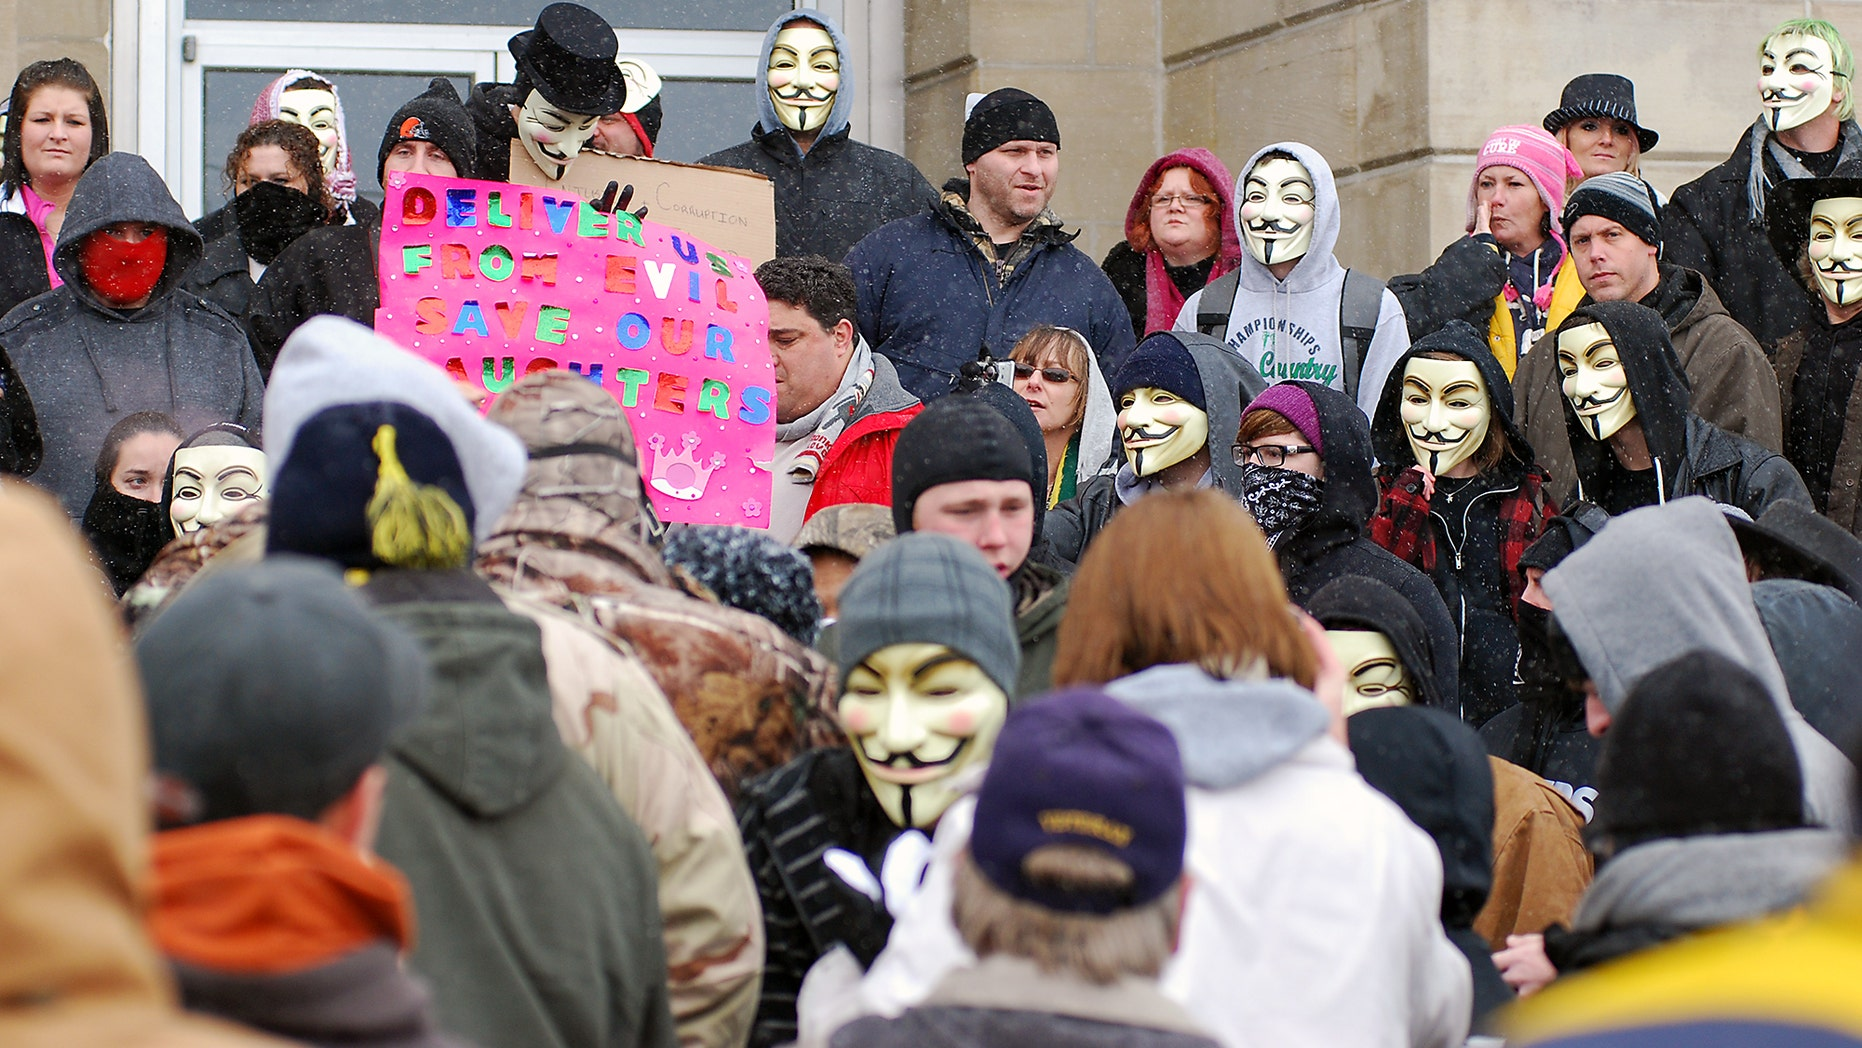 """Dec. 29, 2012: Members of the group """"Anonymous"""" said they are outraged over what they contend is a cover-up in a case involving the alleged rape of a teenage girl by Steubenville High School student-athletes that reportedly occurred in 2012."""